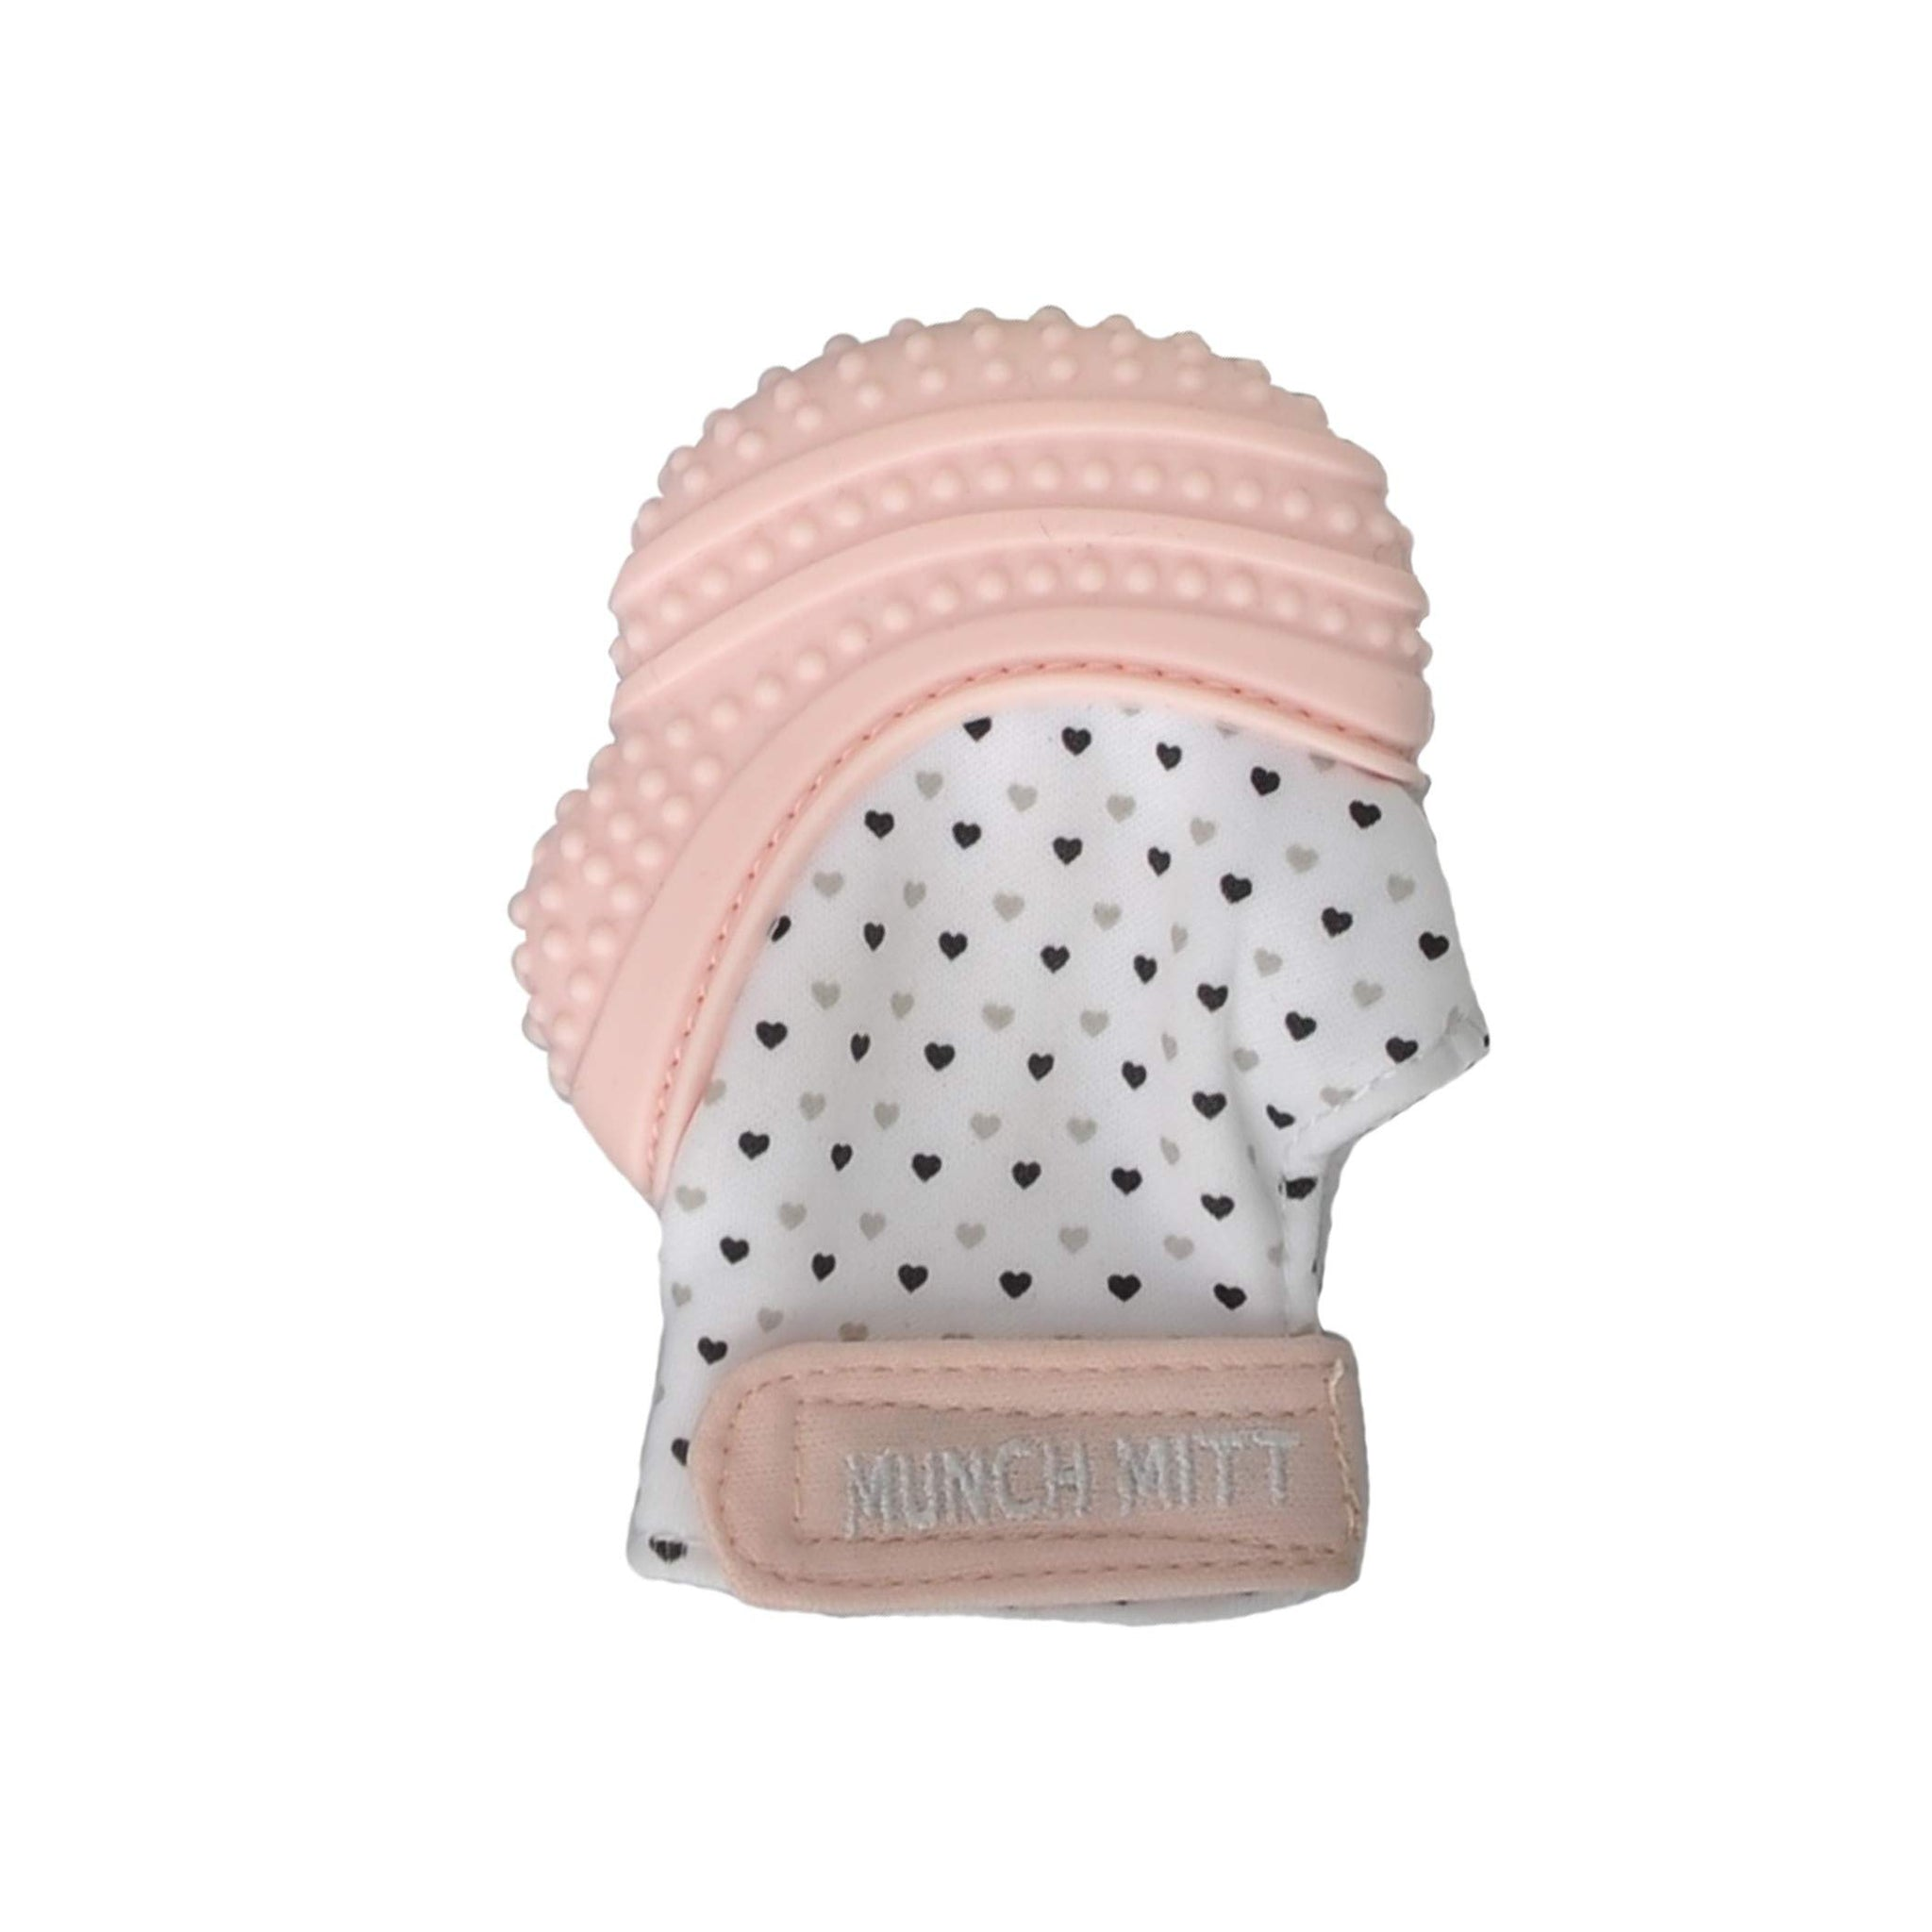 Peachy Pink Munch Mitt